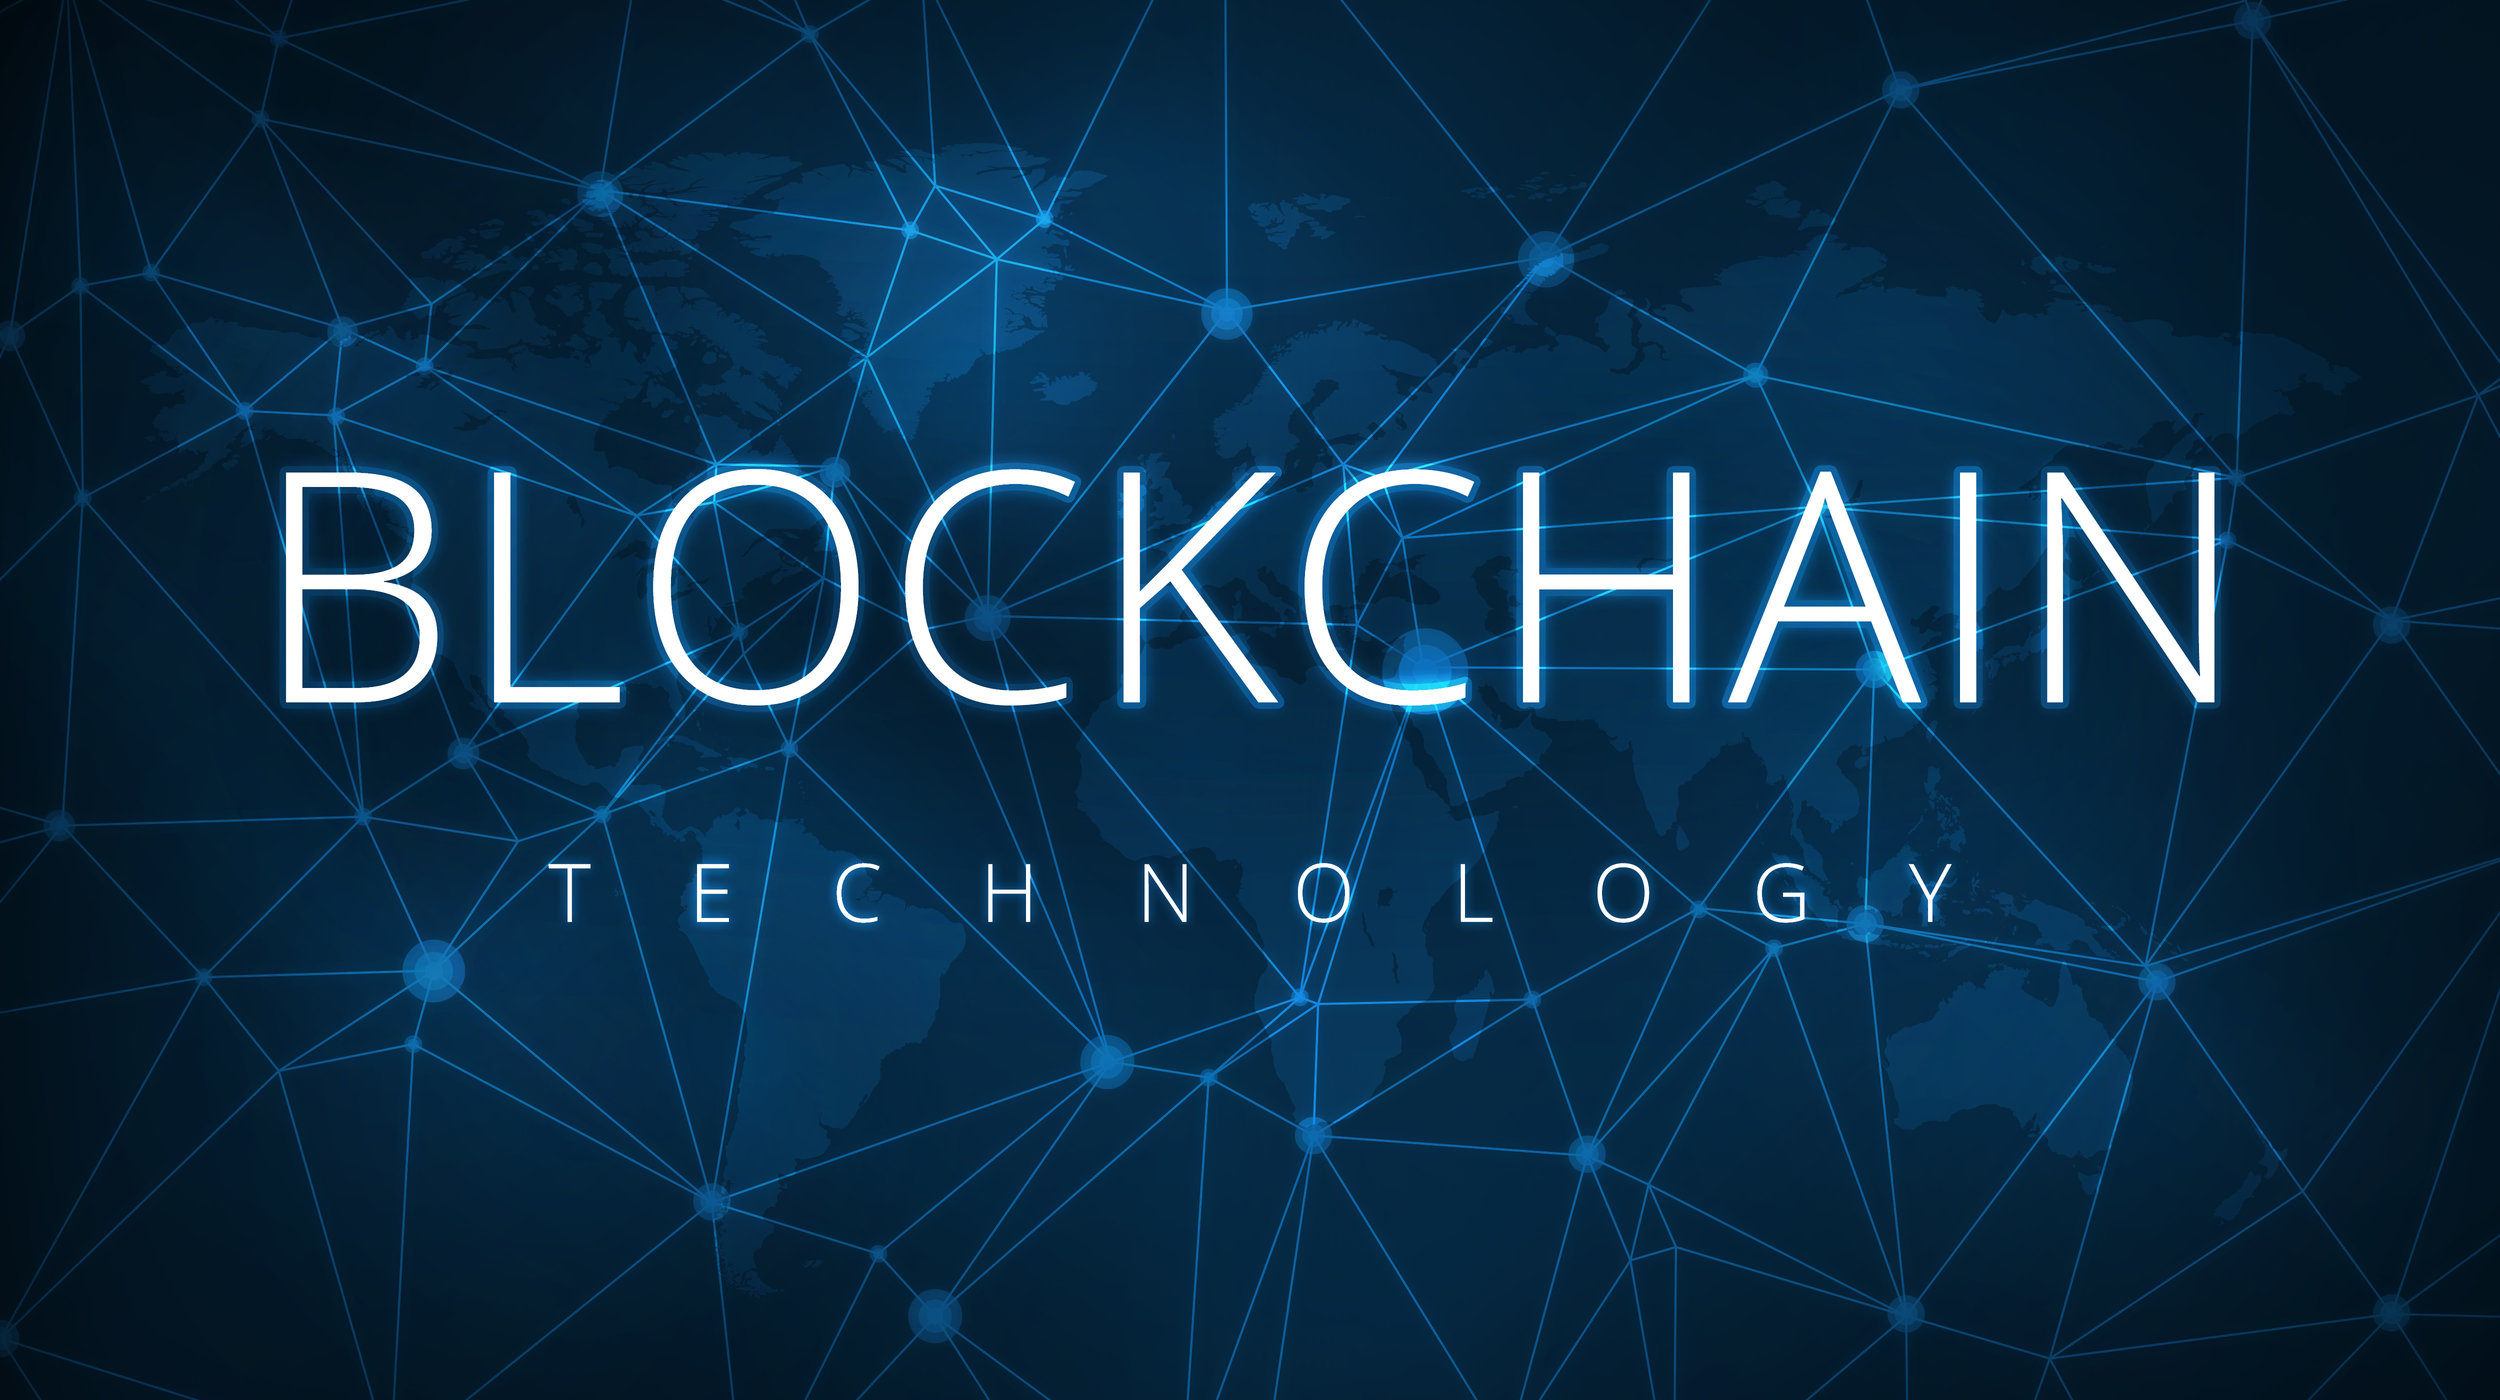 NZ's KlickEx partners with IBM to launch Blockchain-based payments network - October 17, 2017  Article from Computerworld.co.nzBy Stuart Corner